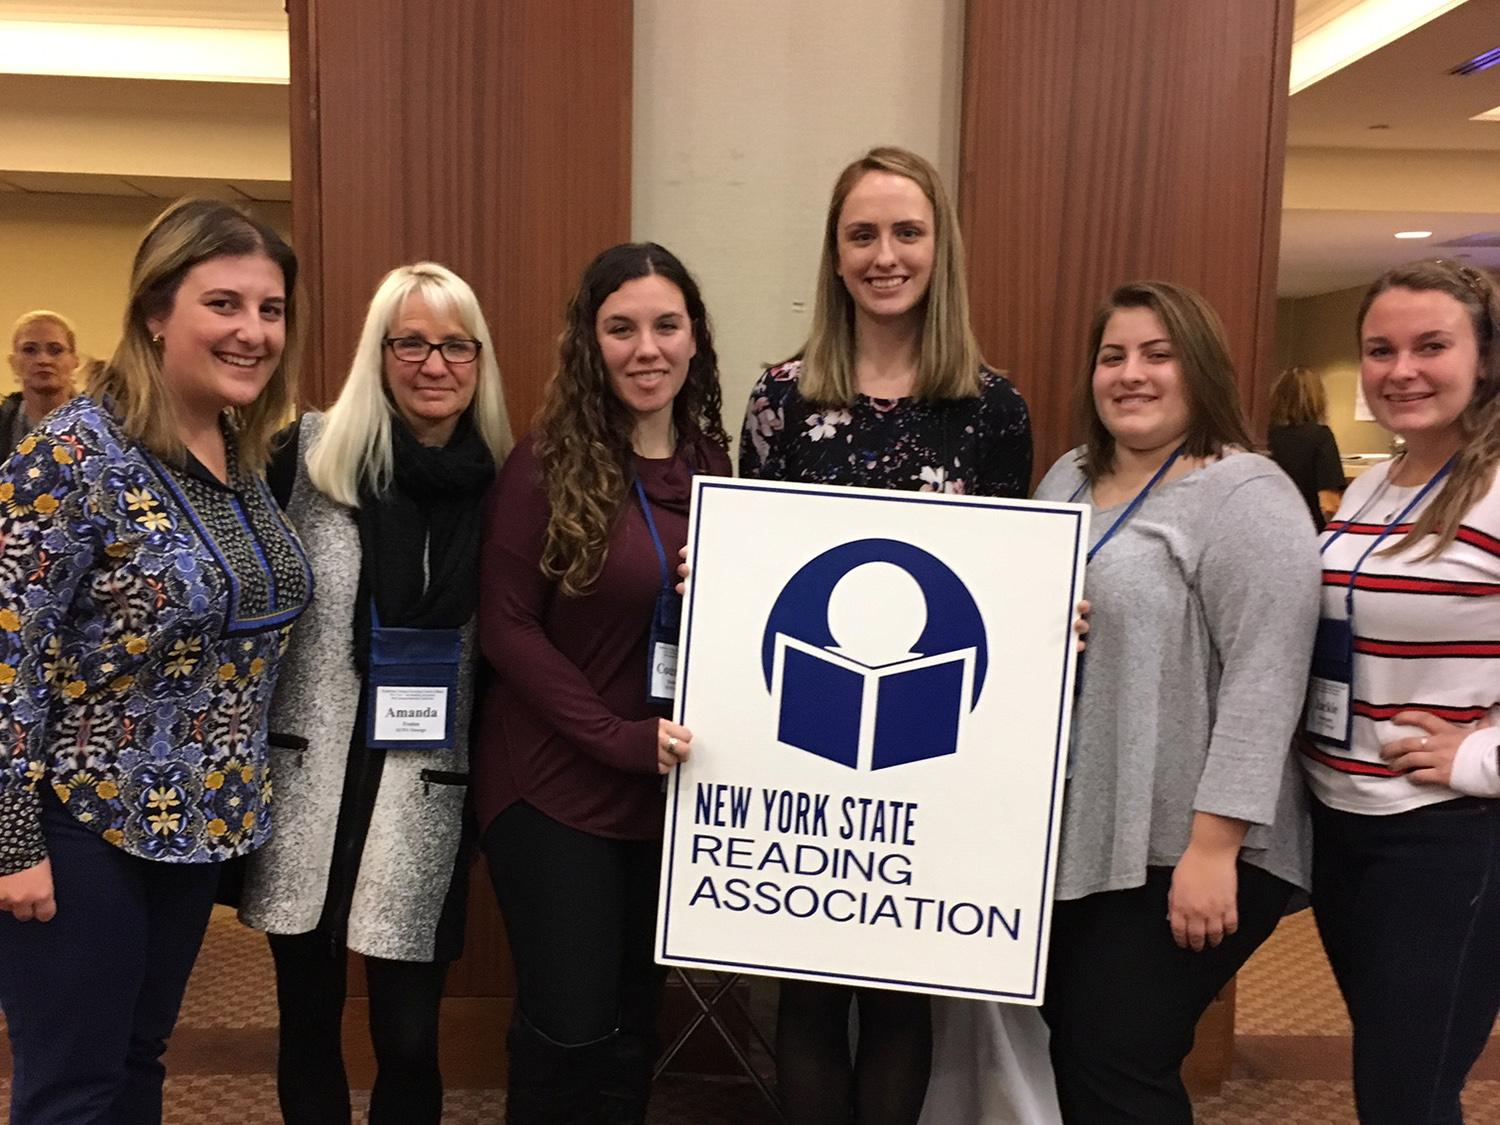 Students and faculty who presented at the New York State Reading Association Conference